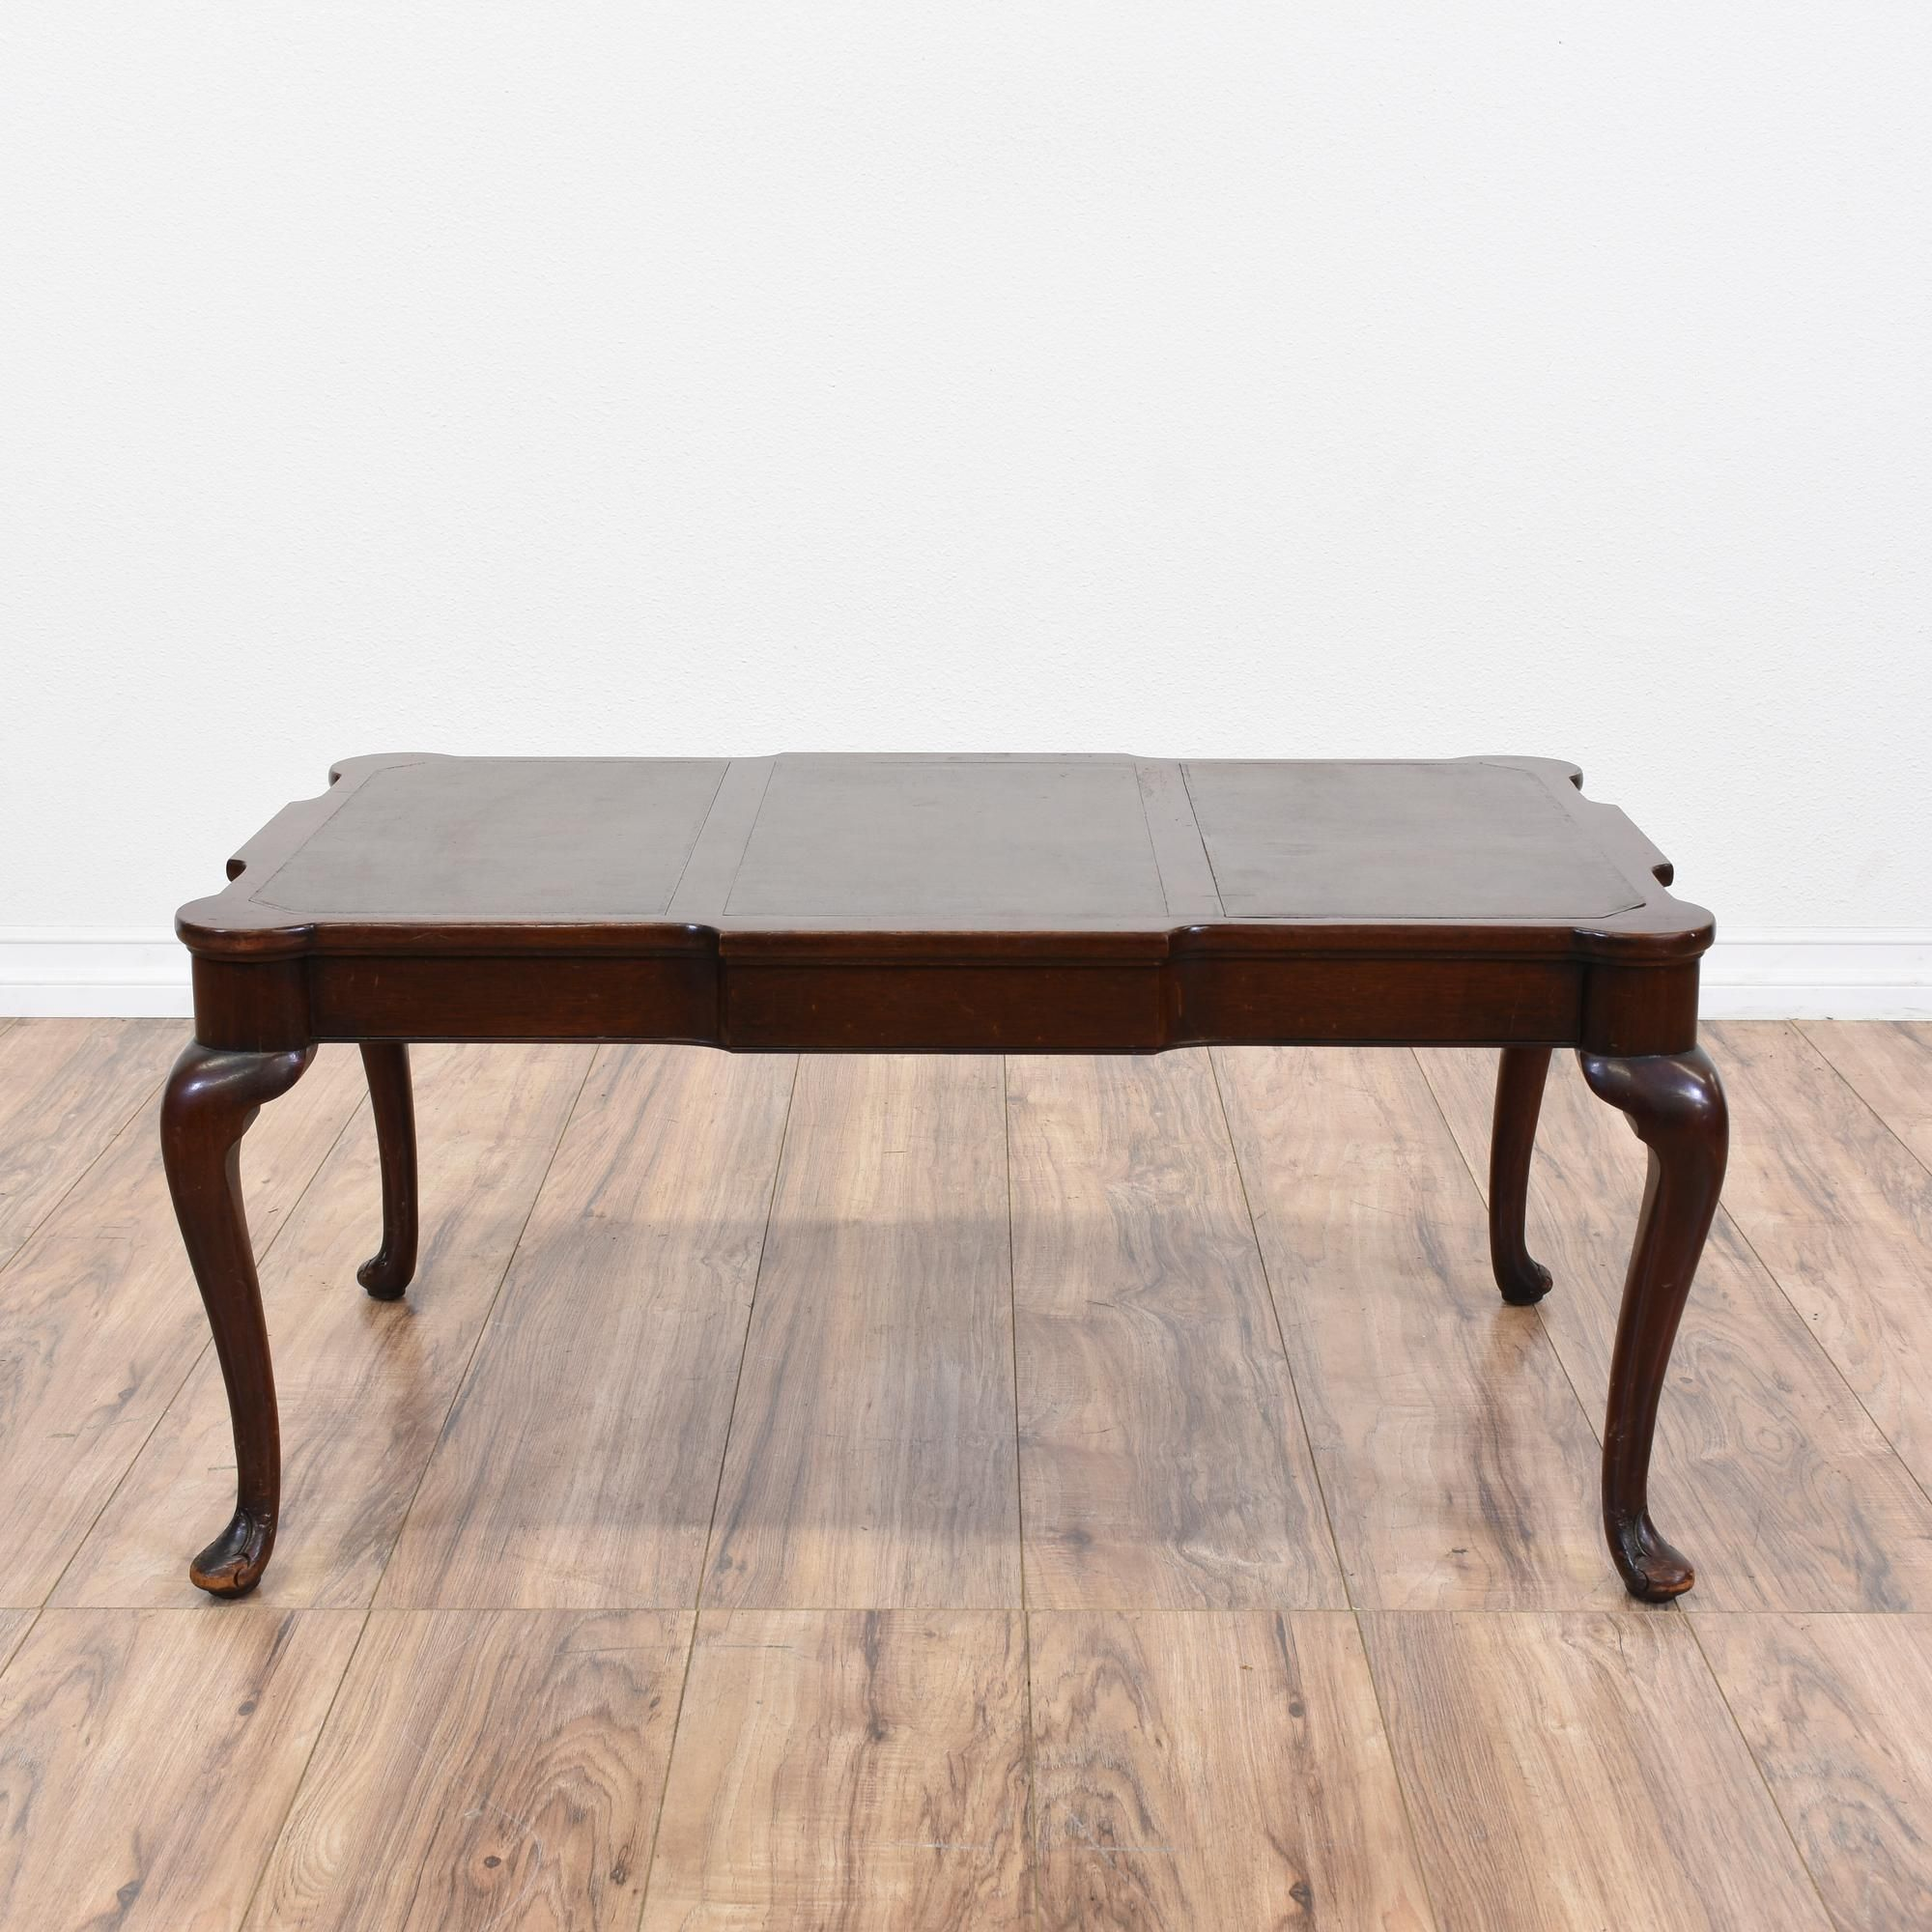 This Queen Anne style coffee table is featured in a solid wood